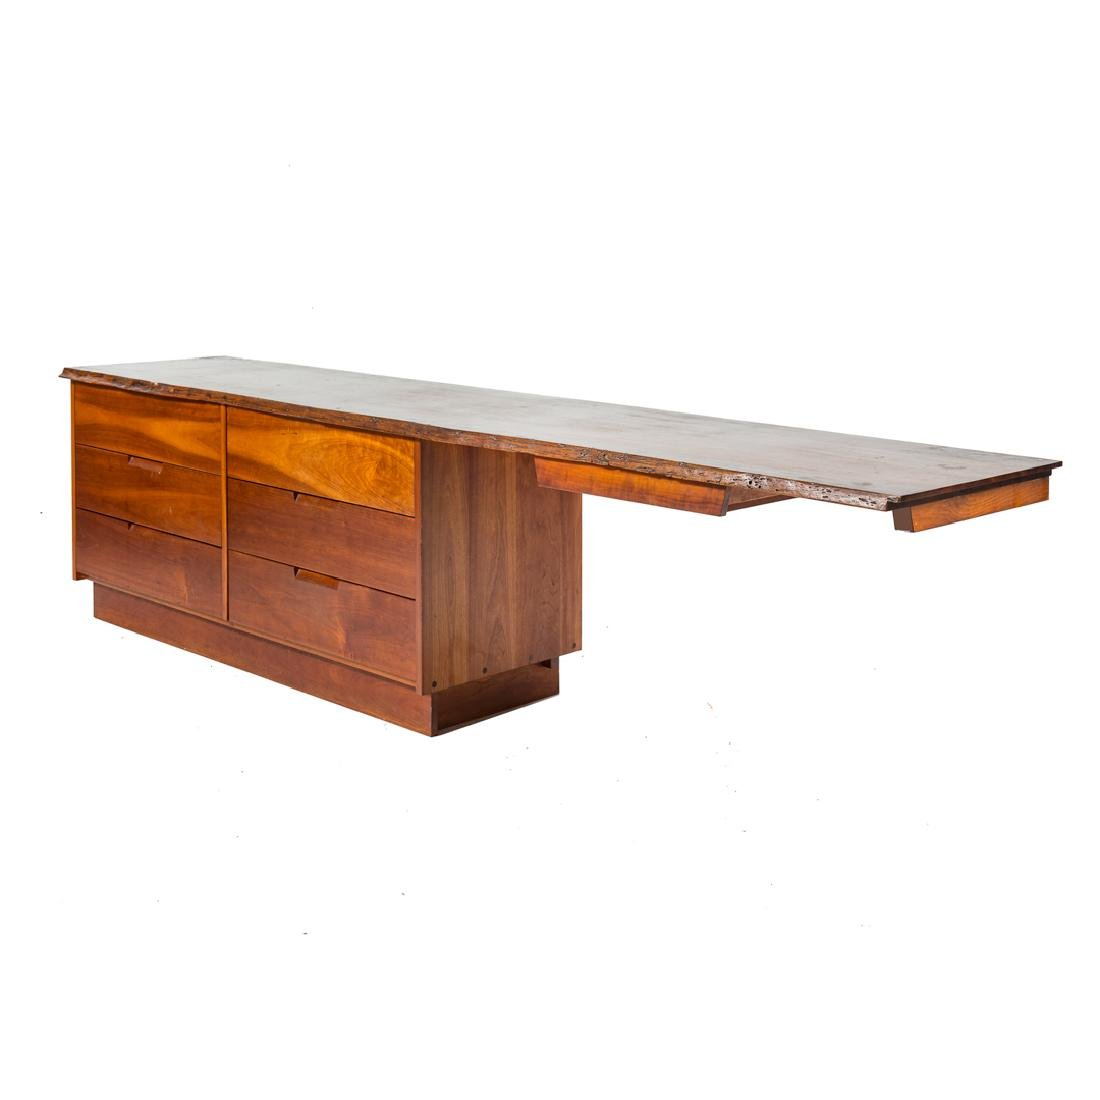 George Nakashima Custom Double Dresser / Desk - 2